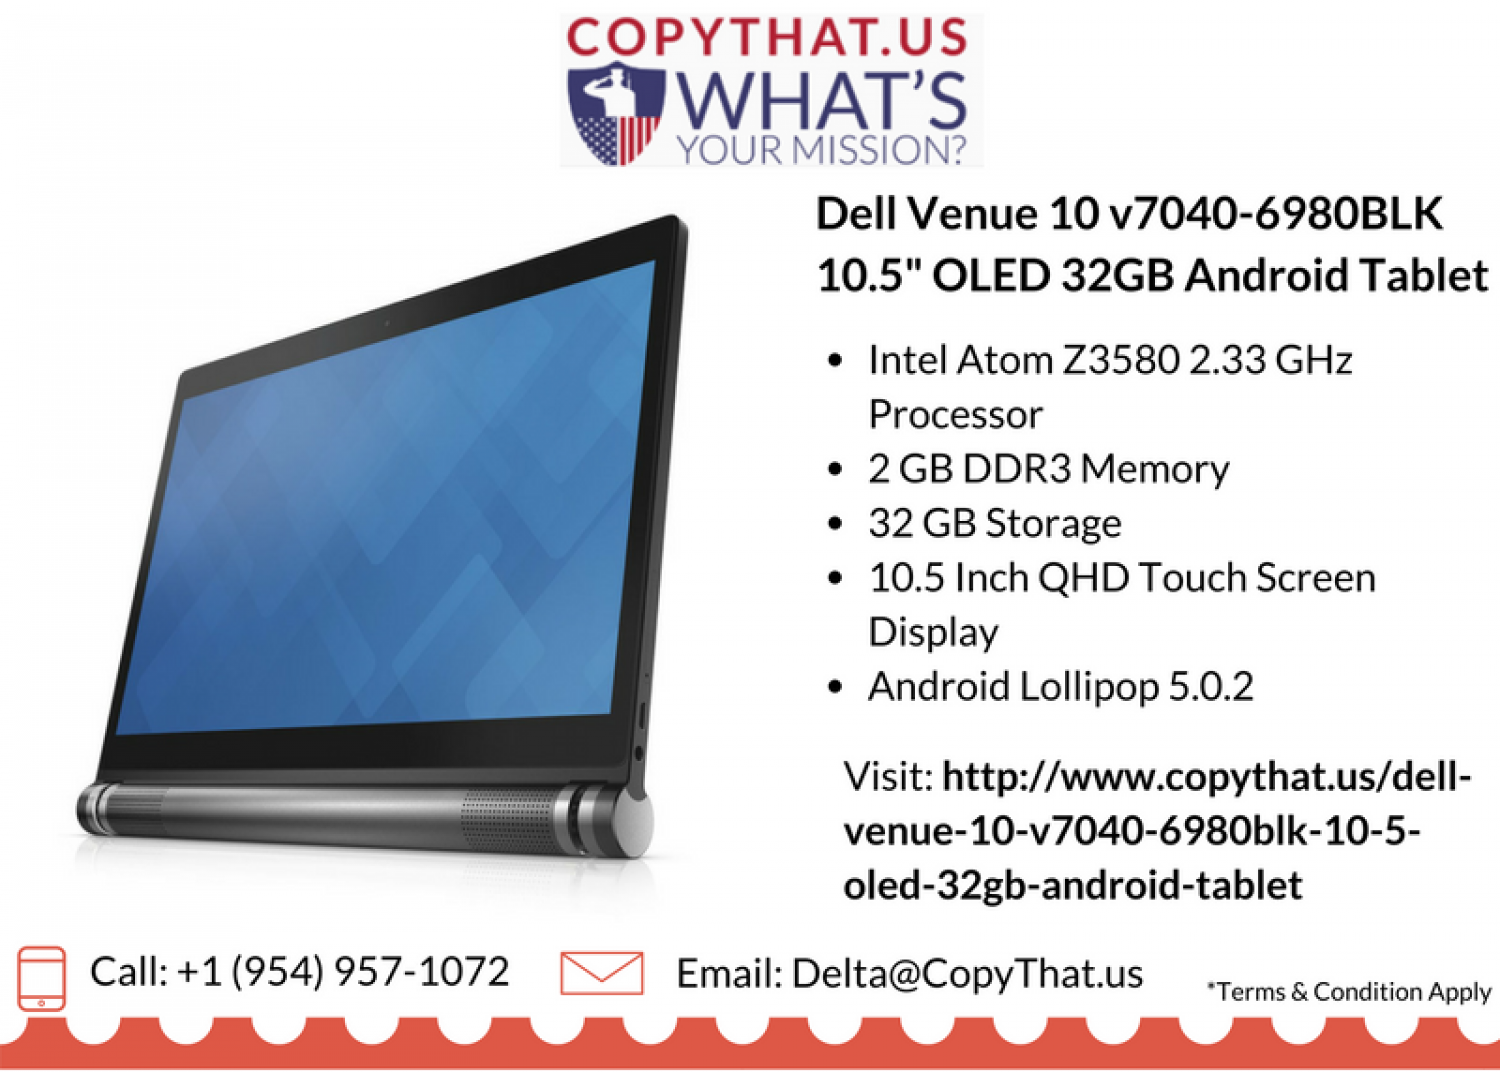 "Buy Dell Venue 10 v7040-6980BLK 10.5"" OLED 32GB Android Tablet Infographic"